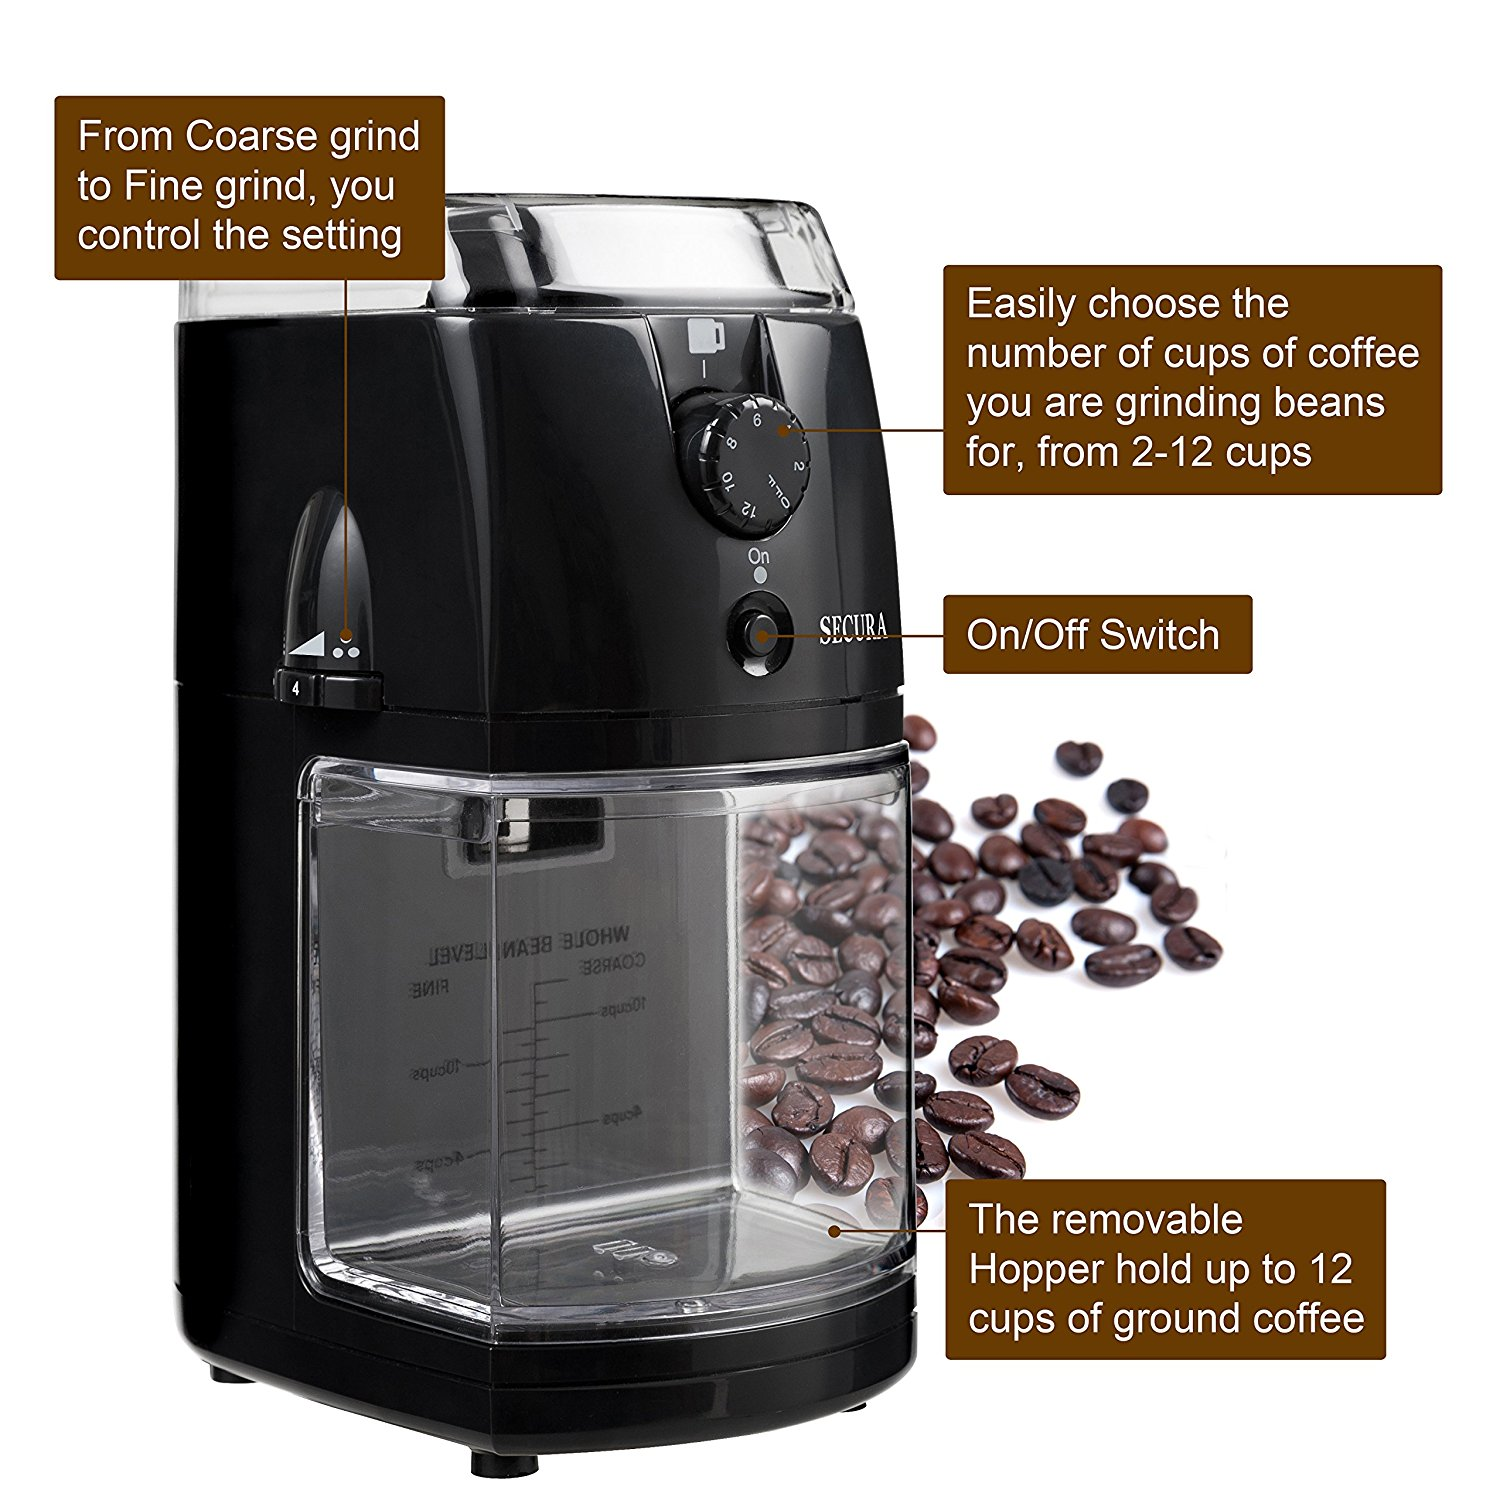 Electric Burr Coffee Grinder Drinker Welhome Zd 10 Conical With Timer Black Secura Automatic Mill 1